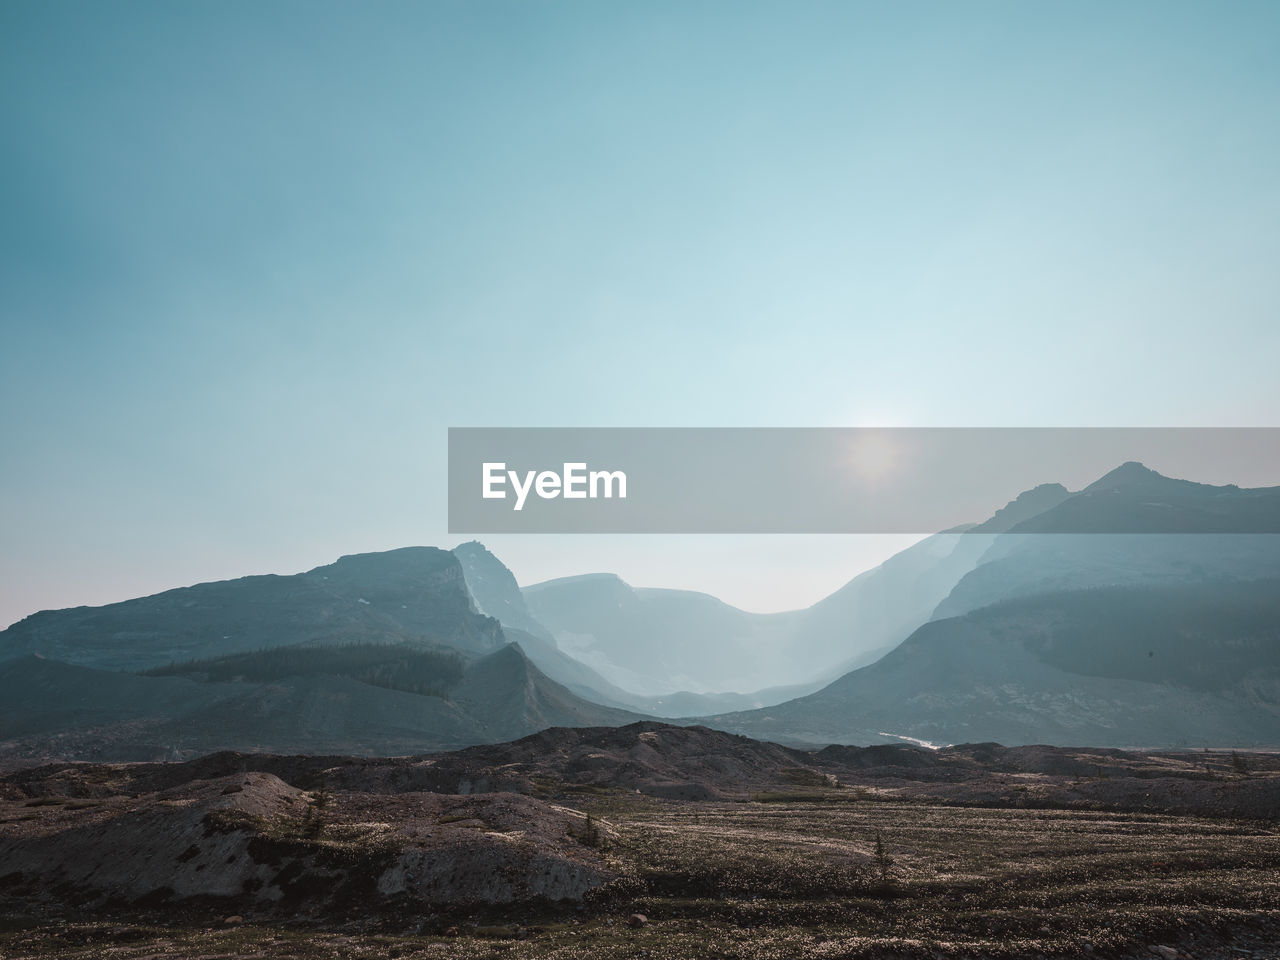 mountain, sky, environment, landscape, nature, beauty in nature, scenery, mountain peak, mountain range, clear sky, travel, sun, sunlight, outdoors, bright, lens flare, no people, wilderness, range, height, high